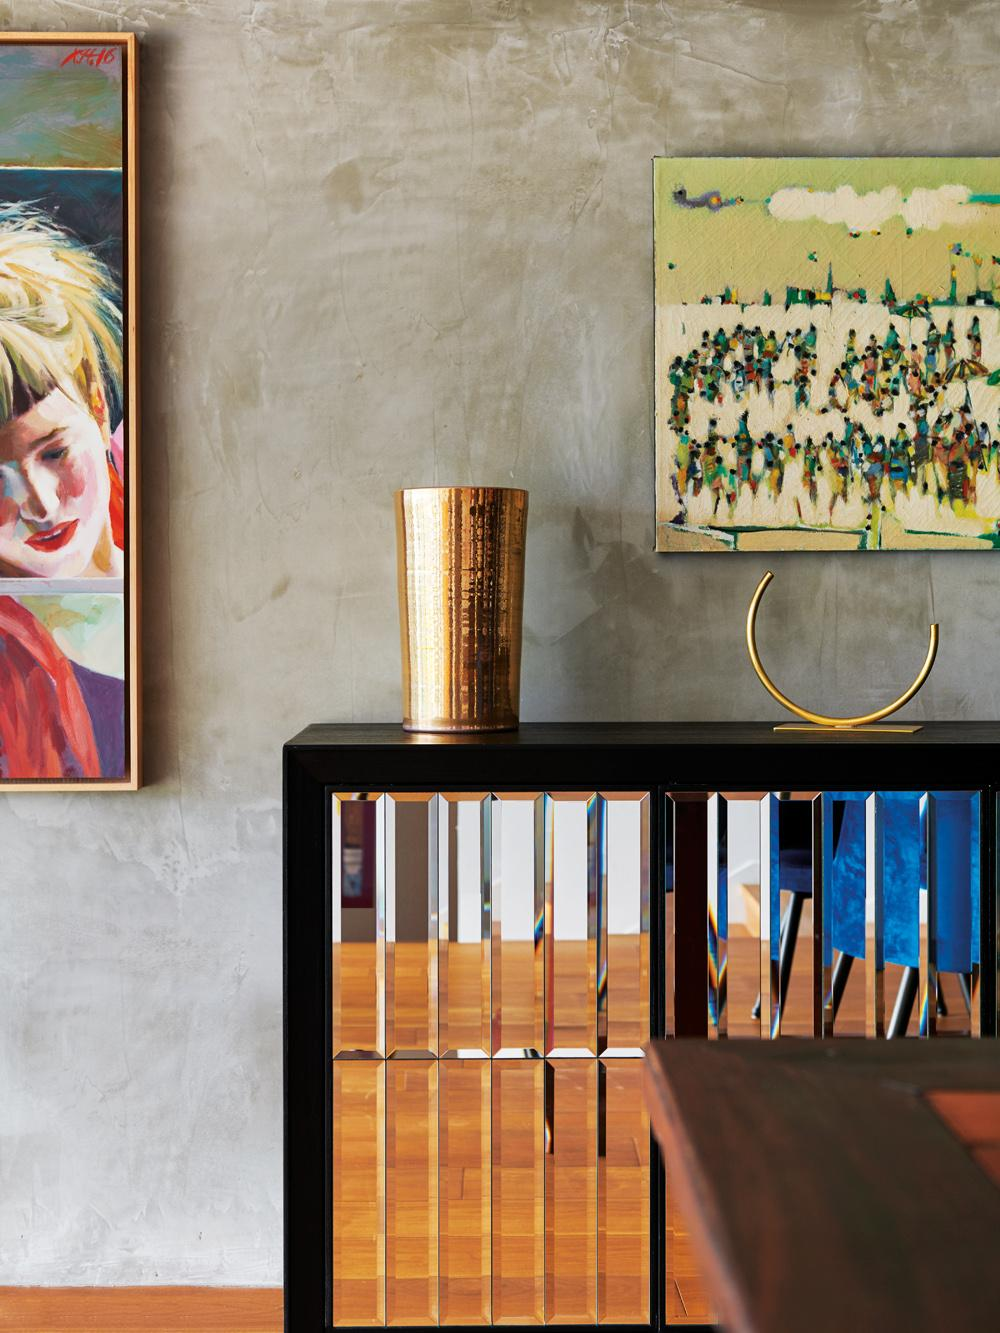 Vibrant artwork and golden accents are peppered throughout the home